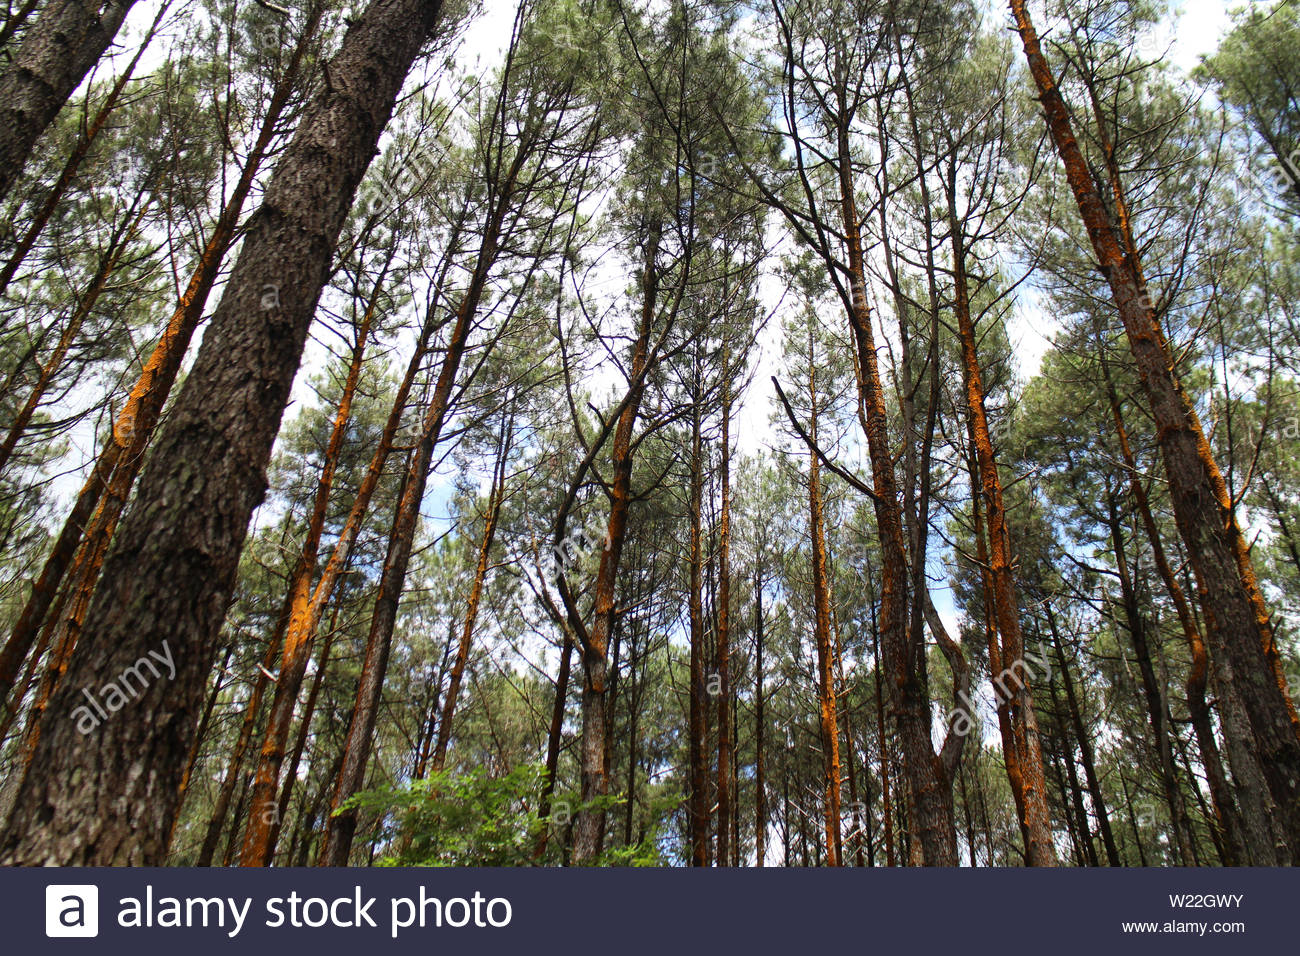 Tall skinny trees with branches on the tops in a forest - Stock Image